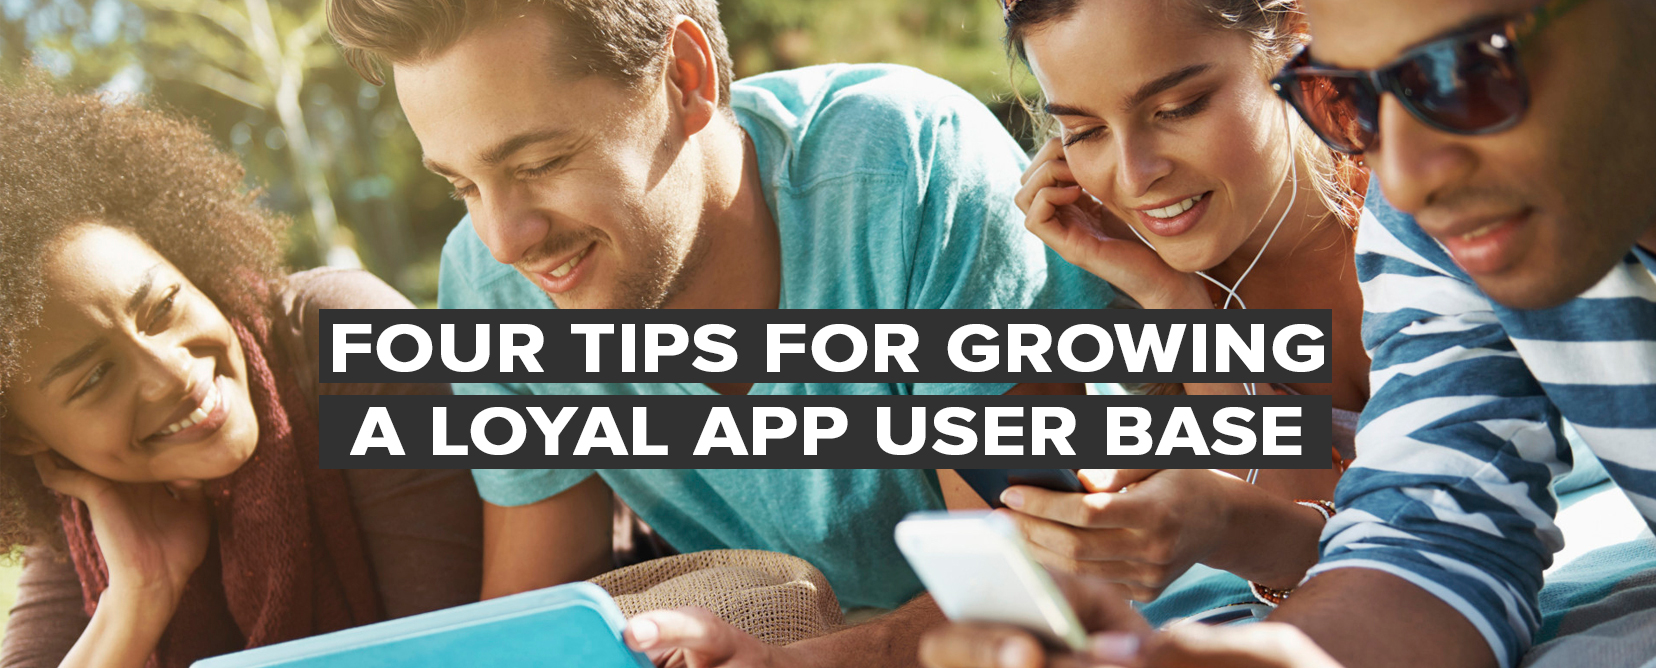 Four Tips for Growing a Loyal App User Base